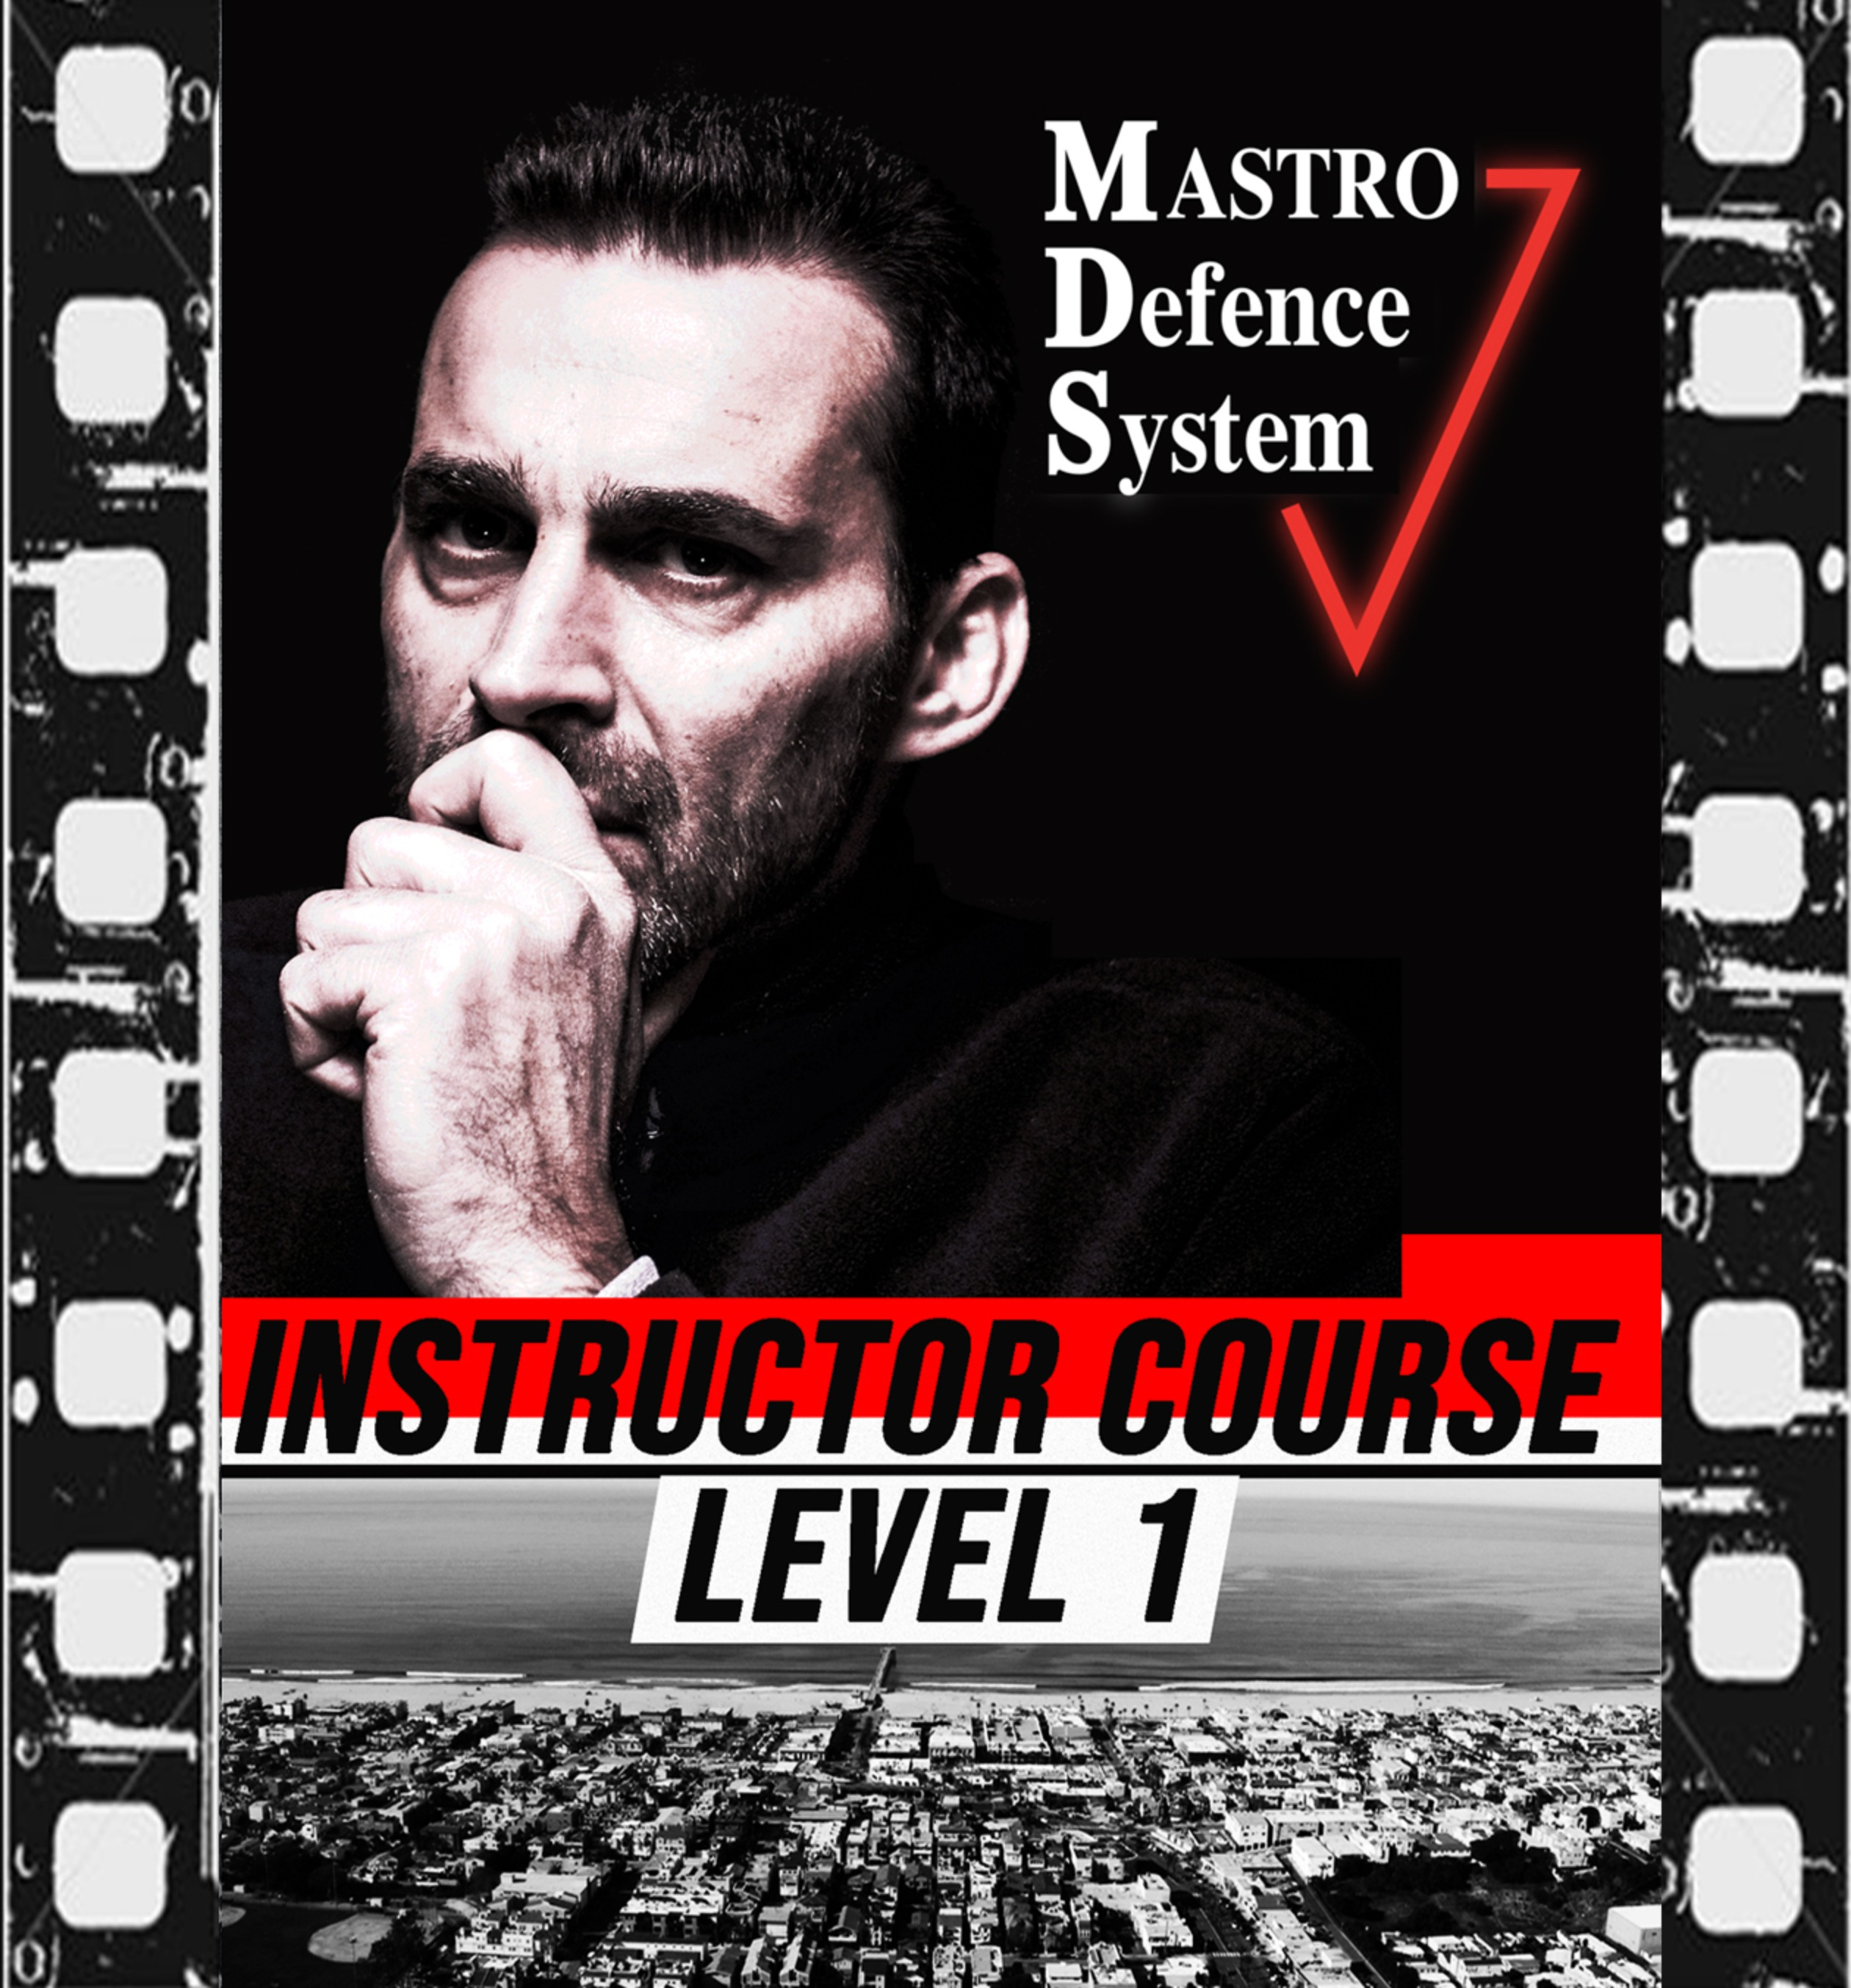 MASTRO DEFENCE SYSTEM INSTRUCTOR DVD LEVEL 1